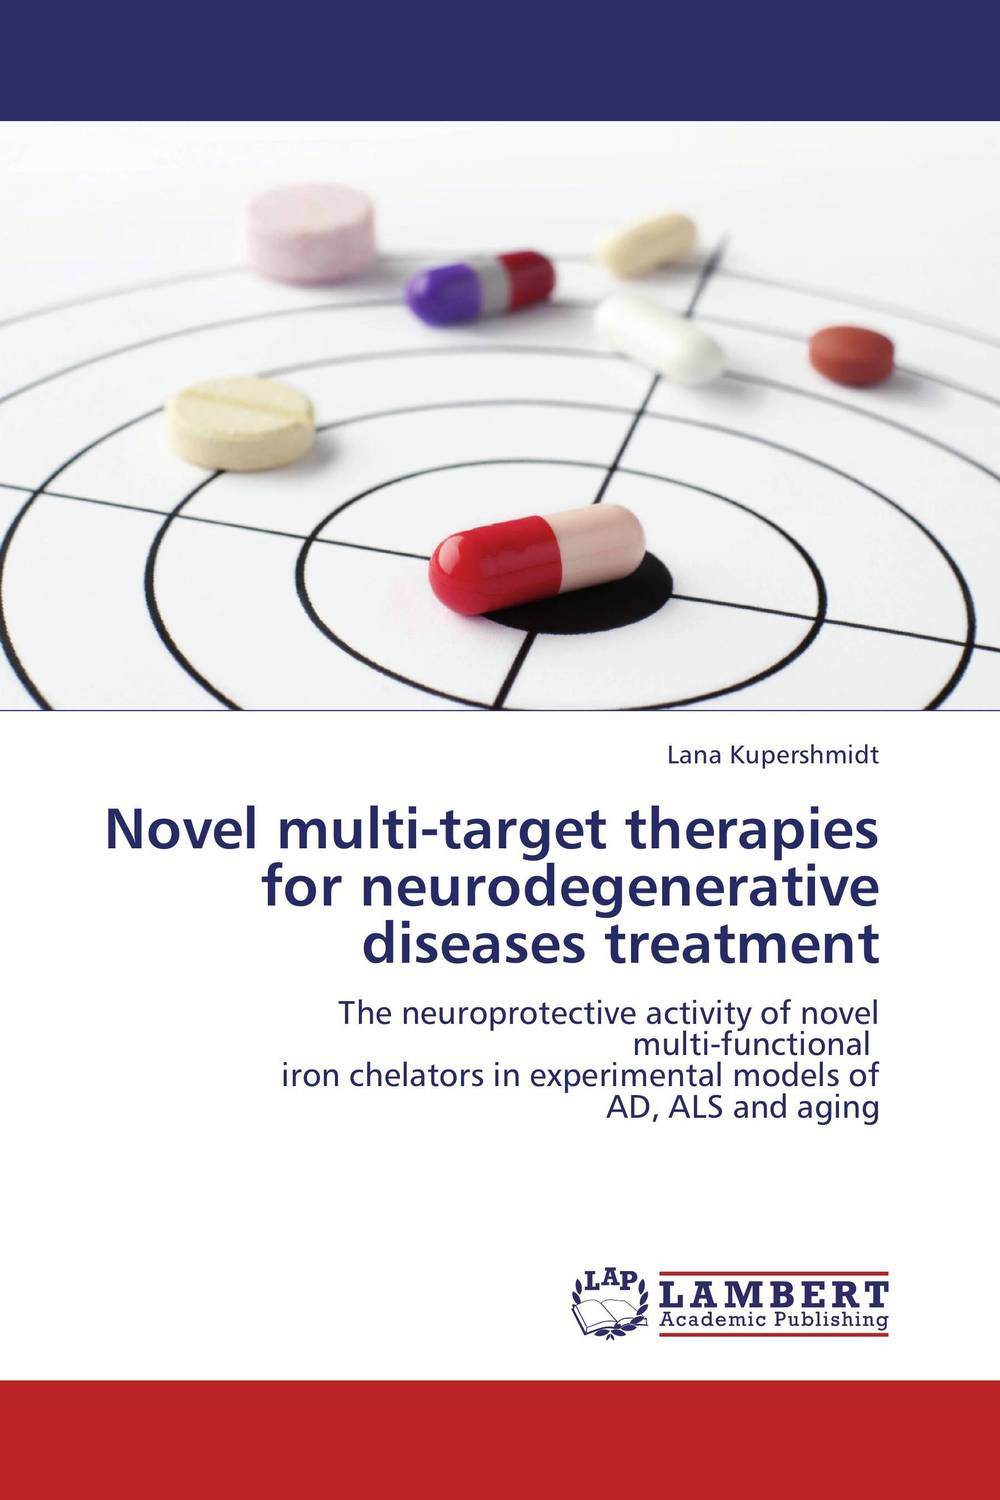 Novel multi-target therapies for neurodegenerative diseases treatment tdp 43 in the pathogenesis of amyotrophic lateral sclerosis als